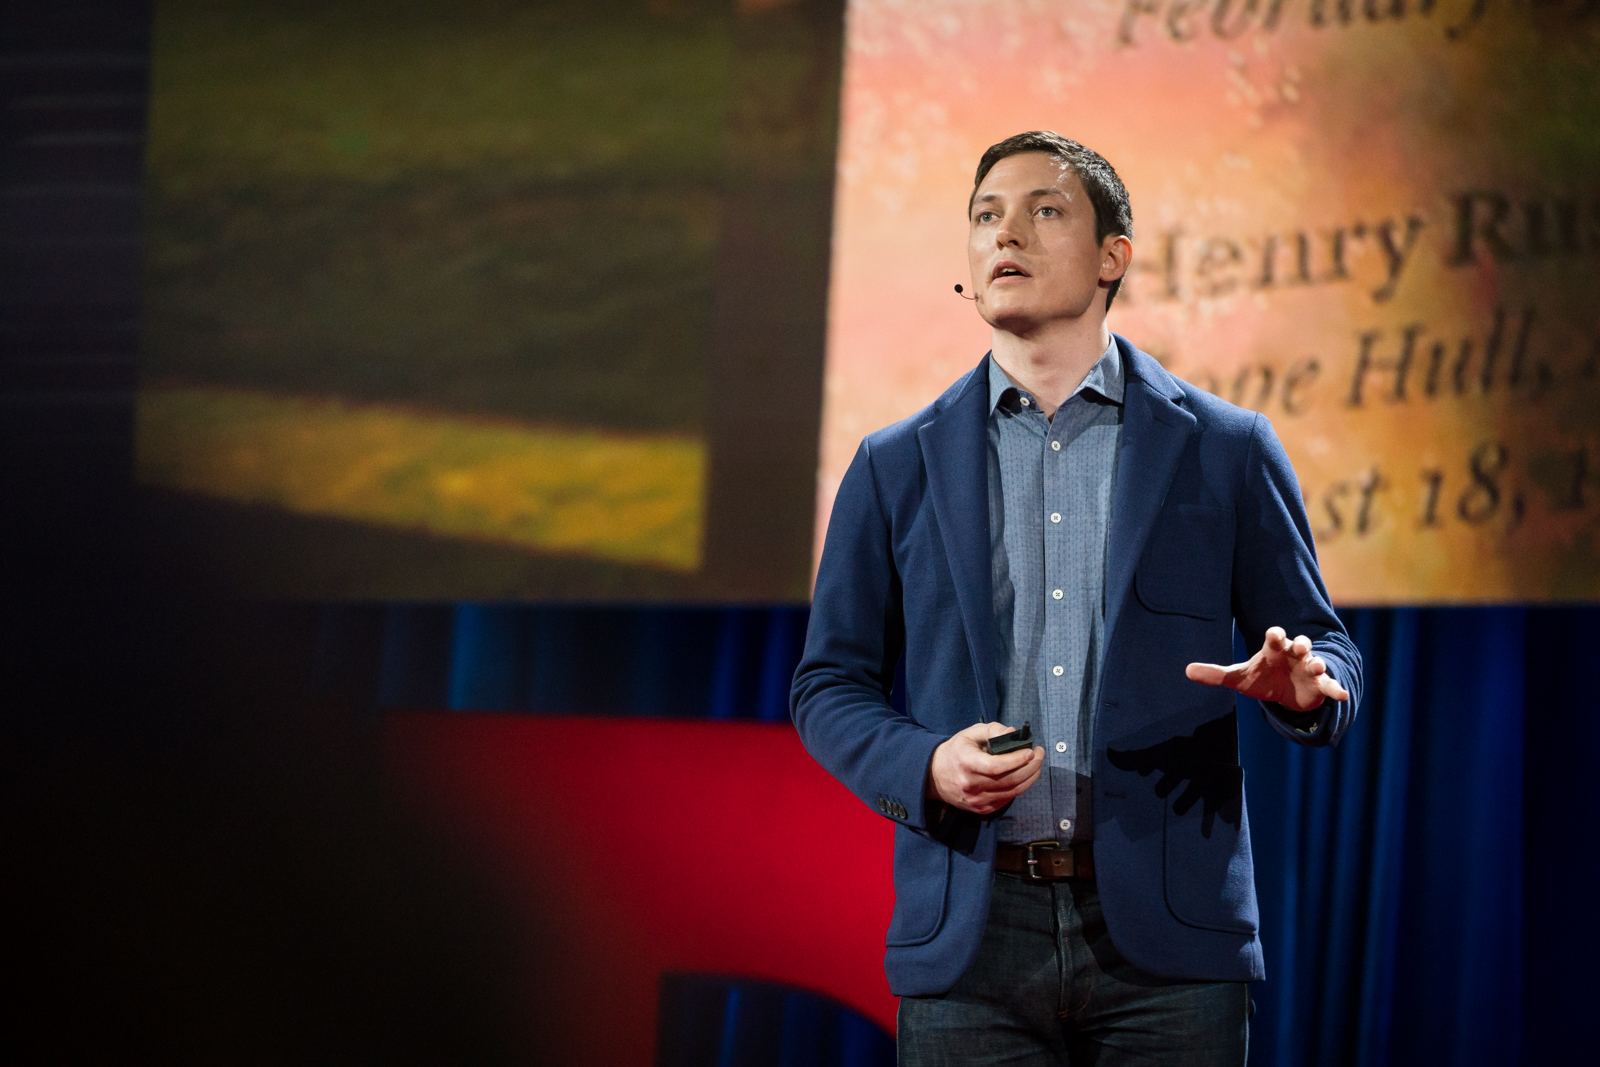 Michael Murphy speaks at TED2016 - Dream, February 15-19, 2016, Vancouver Convention Center, Vancouver, Canada. Photo: Bret Hartman / TED